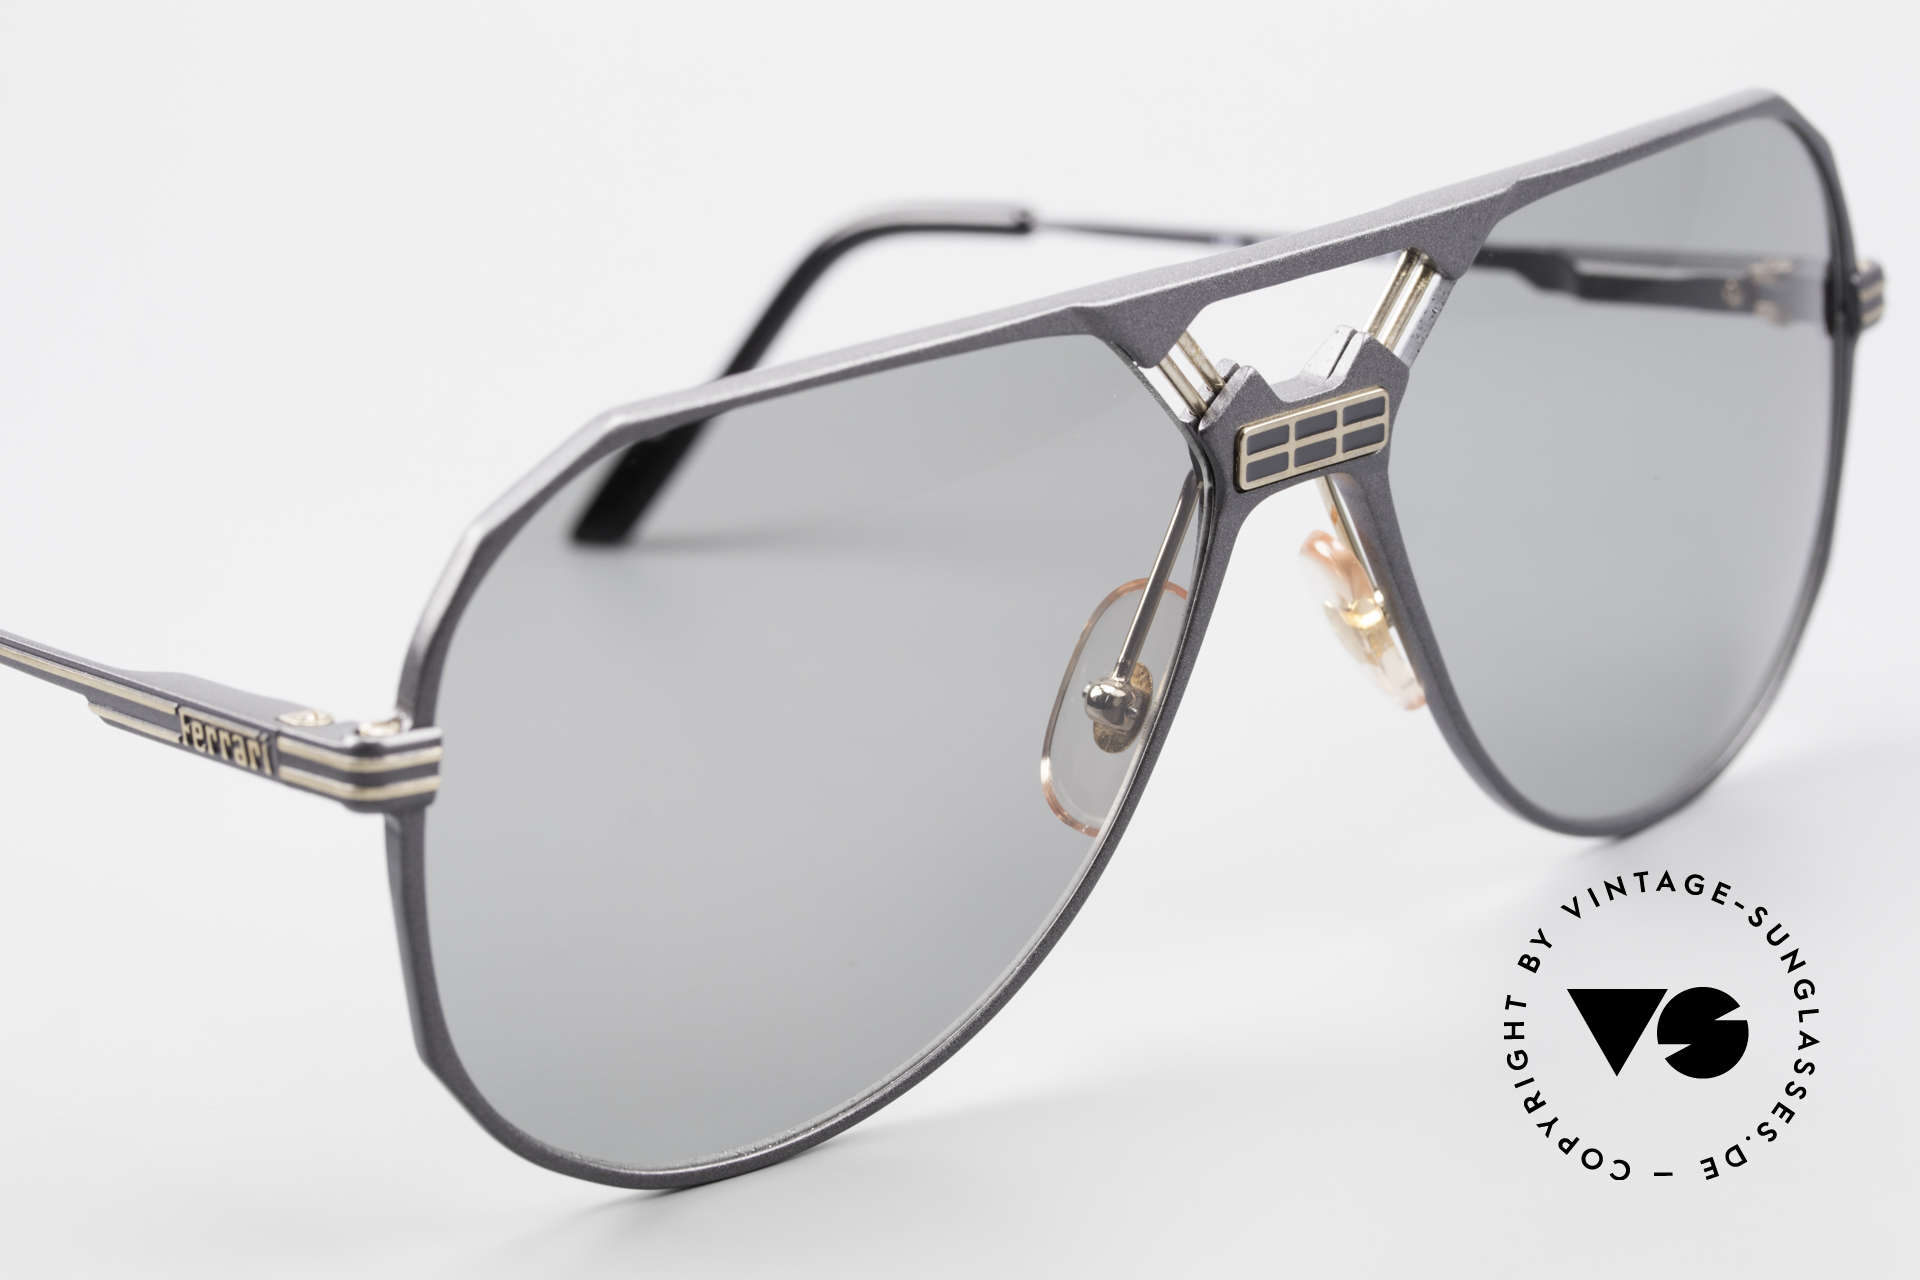 Ferrari F23/S 90's Aviator Sports Sunglasses, never worn (like all our vintage Ferrari sunglasses), Made for Men